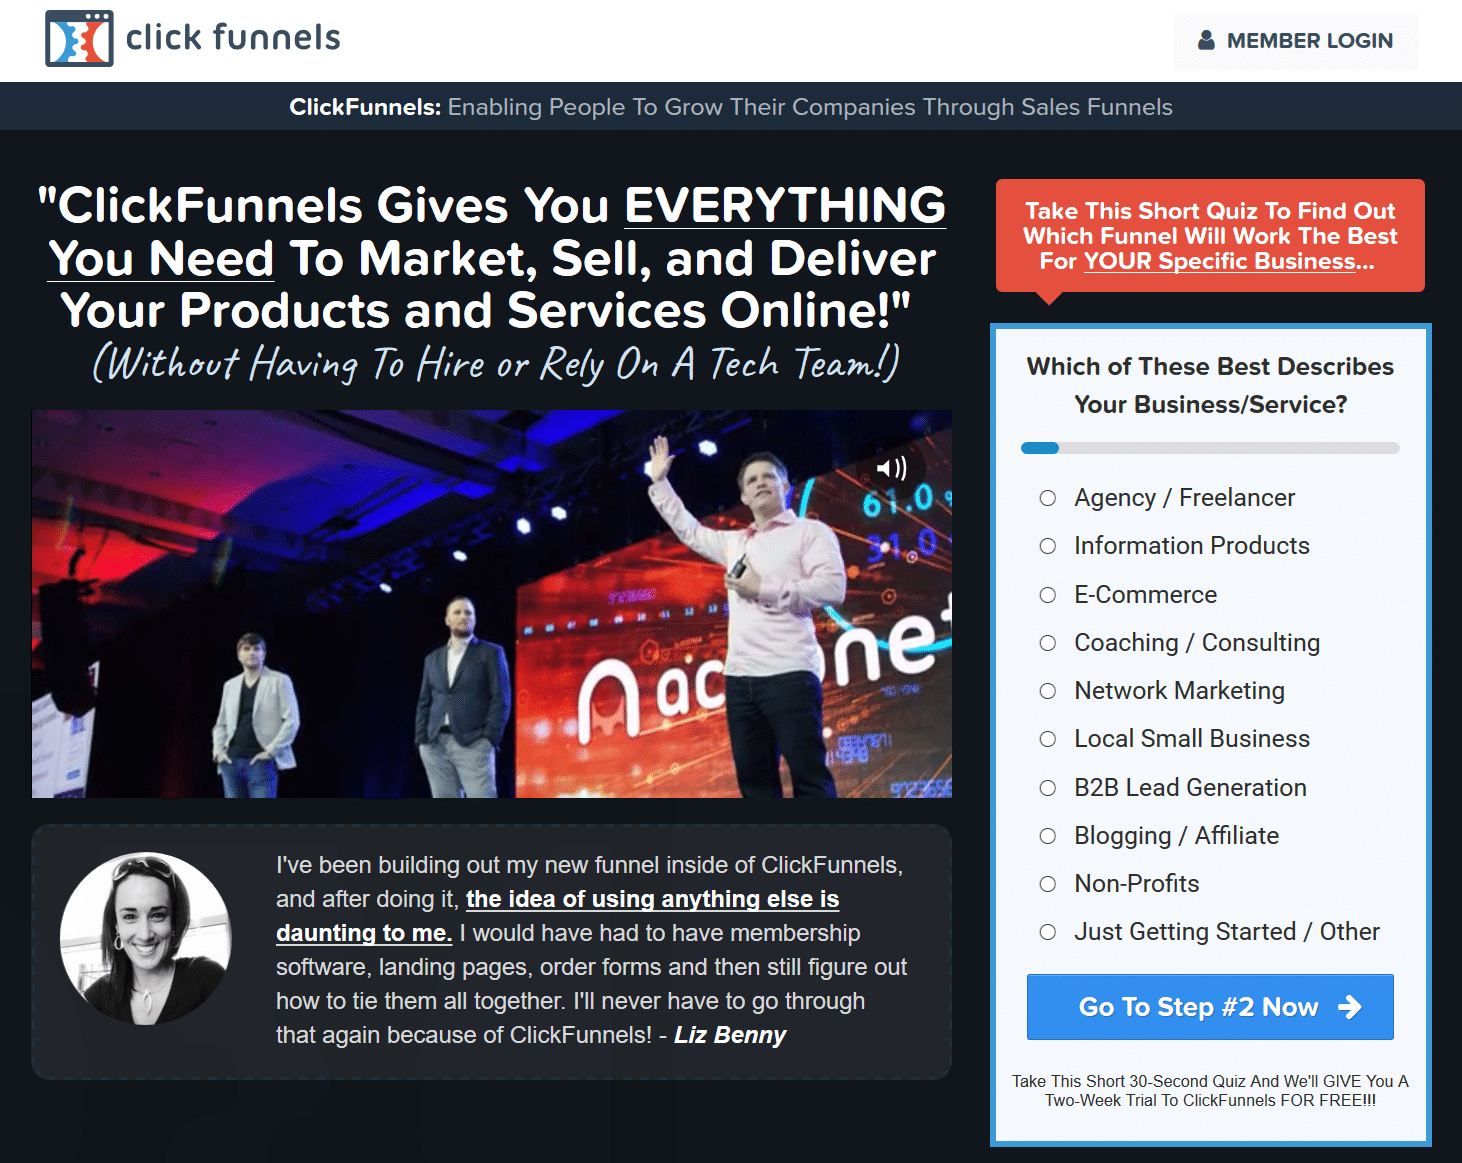 How To Build Out A Clickfunnels For Personal Branding